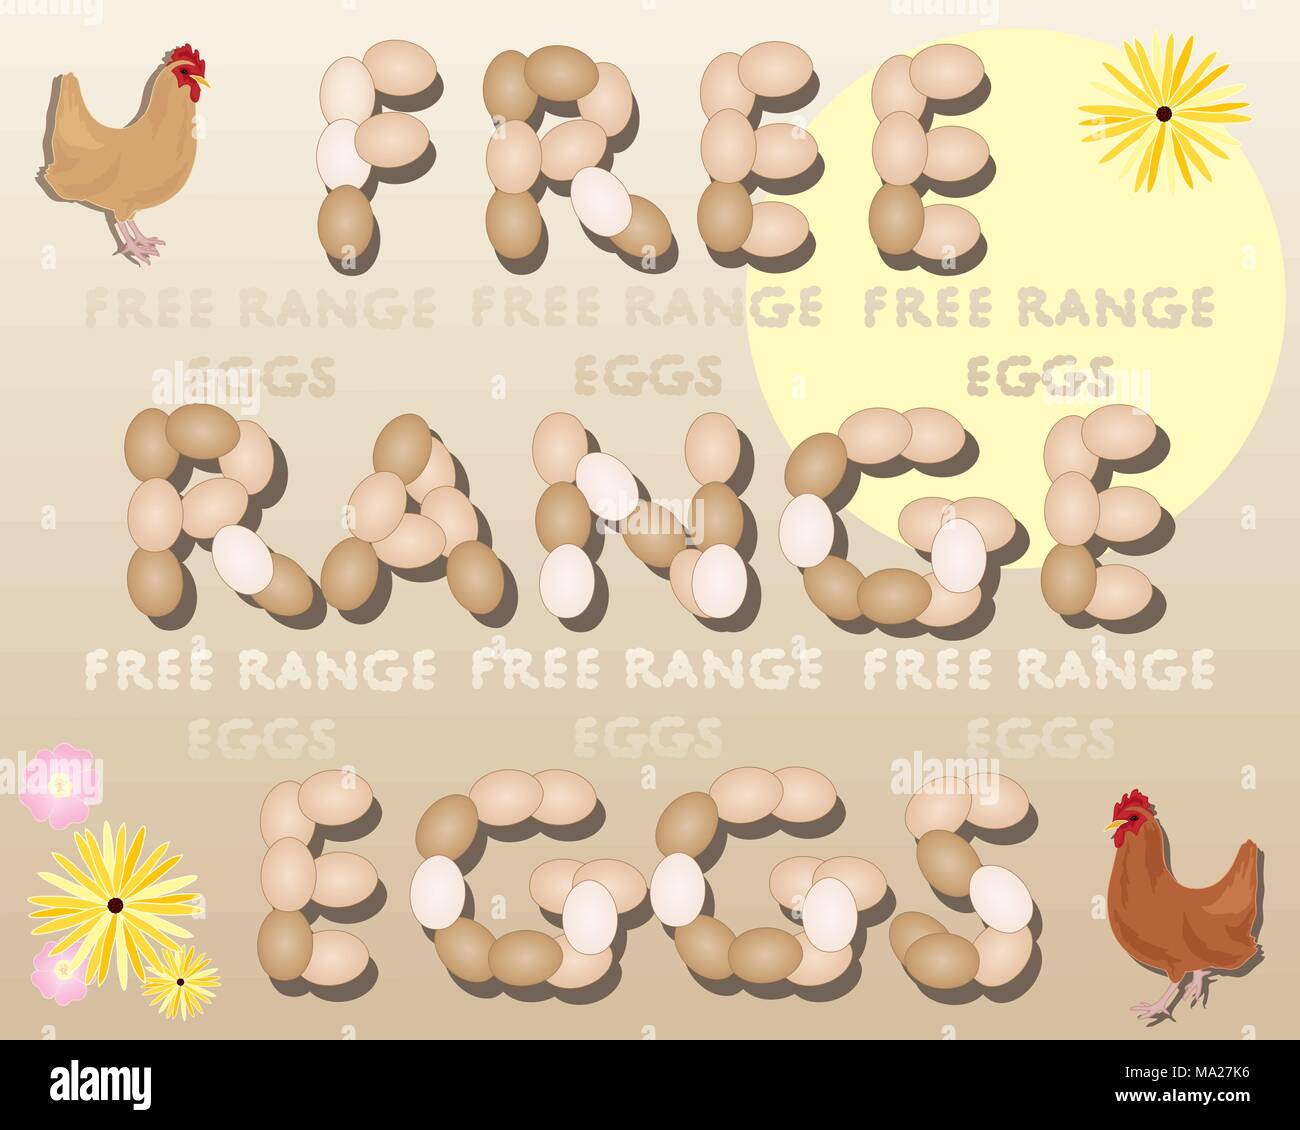 an illustration of two chickens standing beside the words free range eggs under a sun with flowers on a beige background - Stock Vector